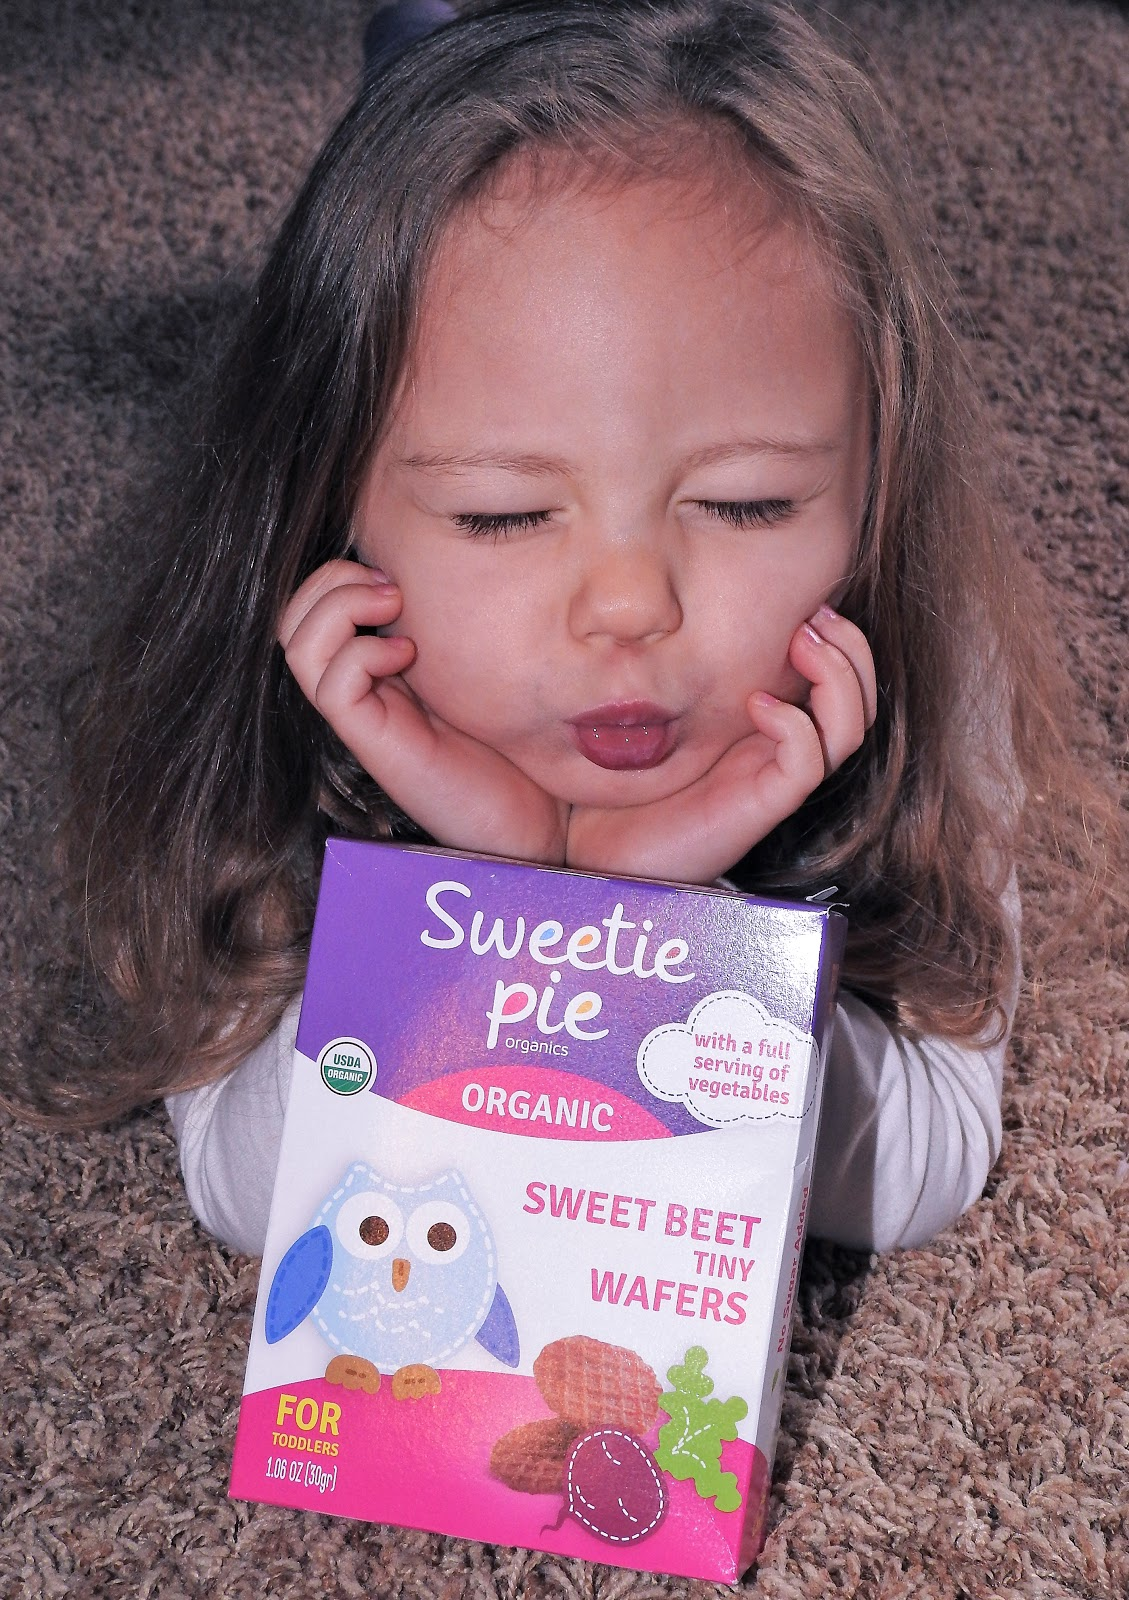 Sweetie Pie Organics Snack for kids